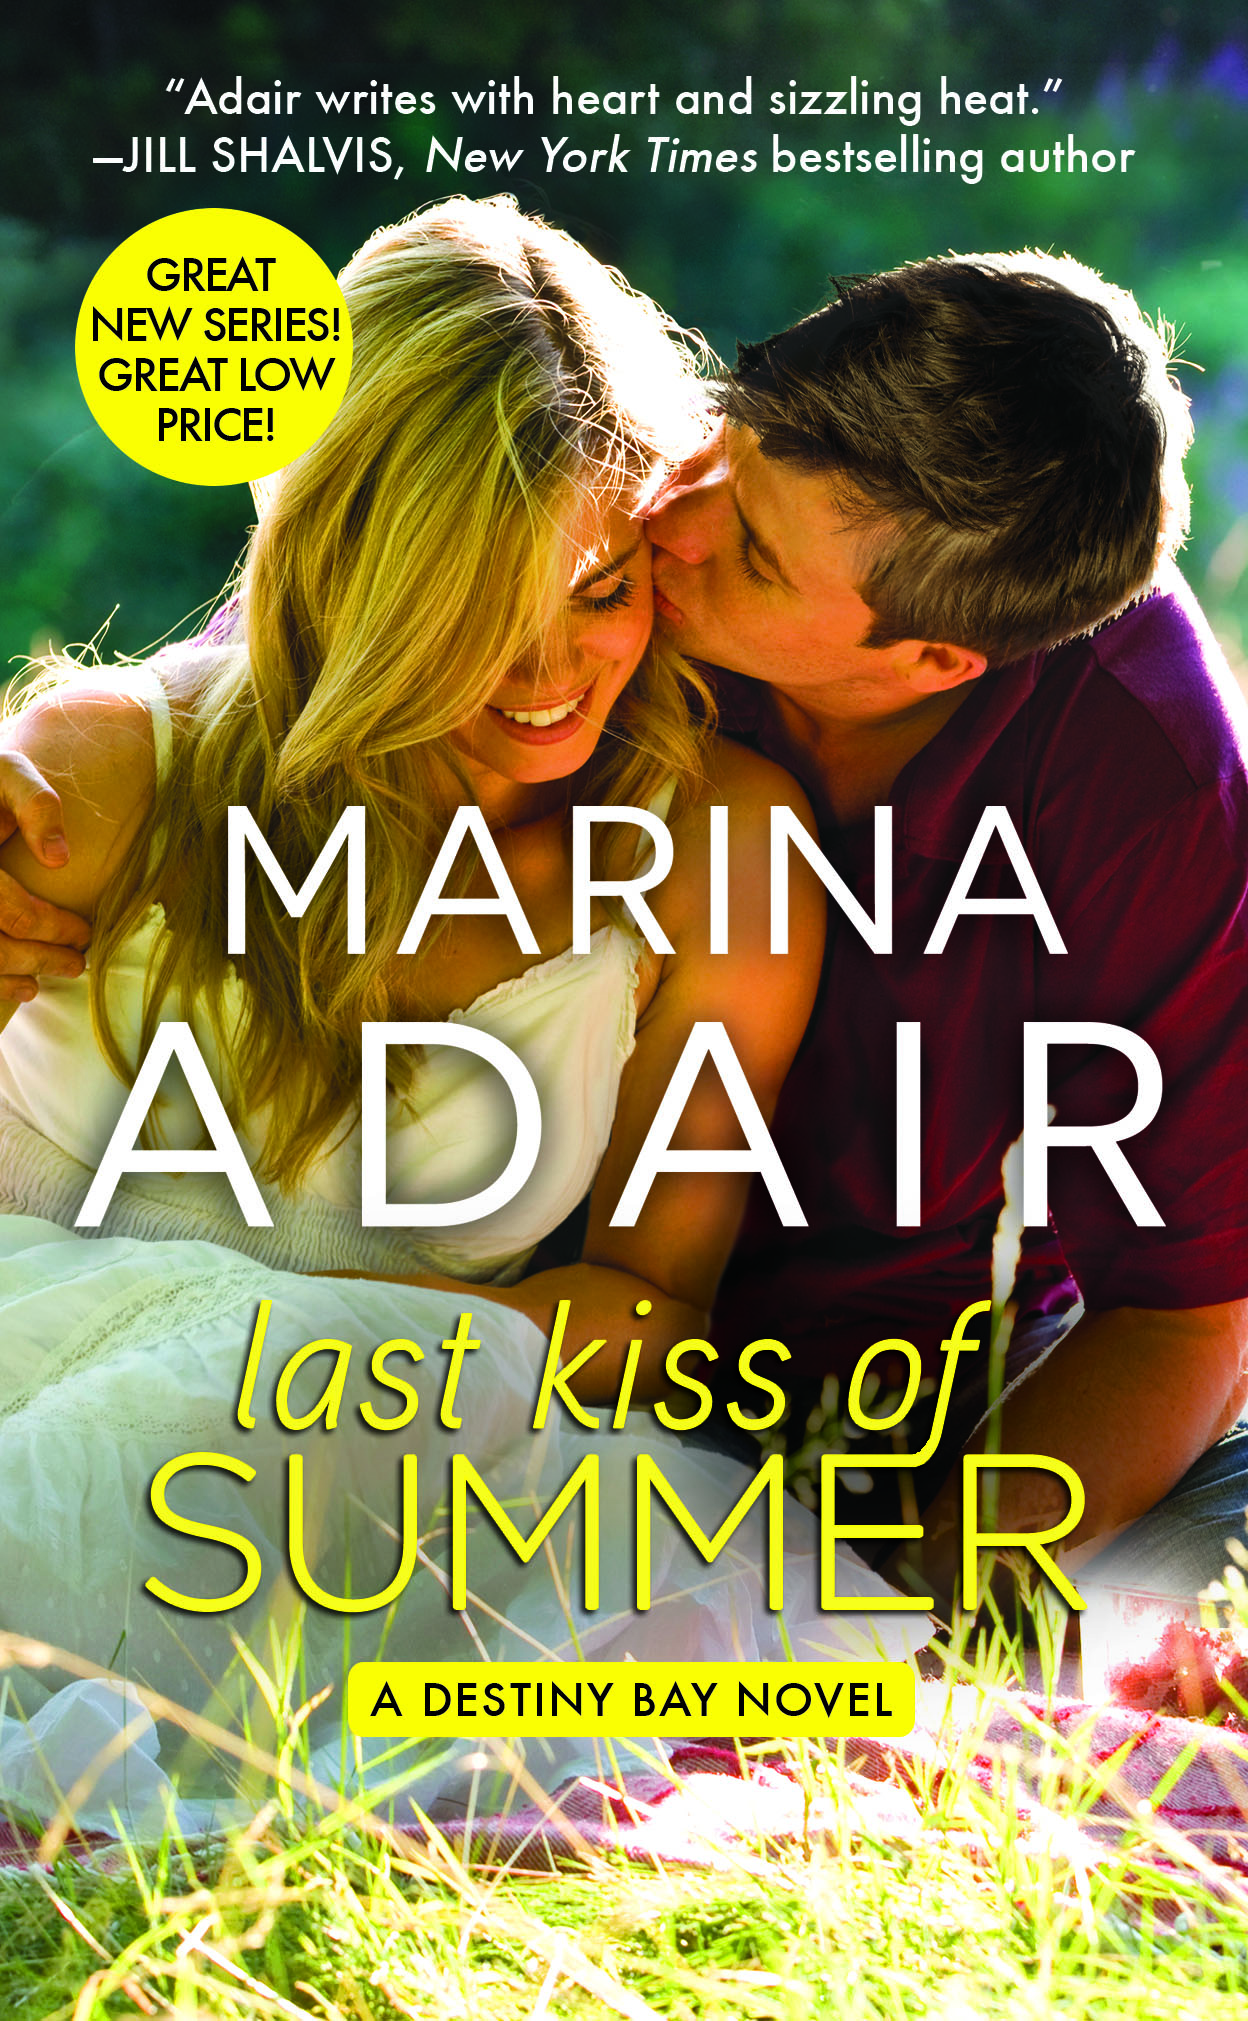 Last Kiss of Summer by Marina Adair